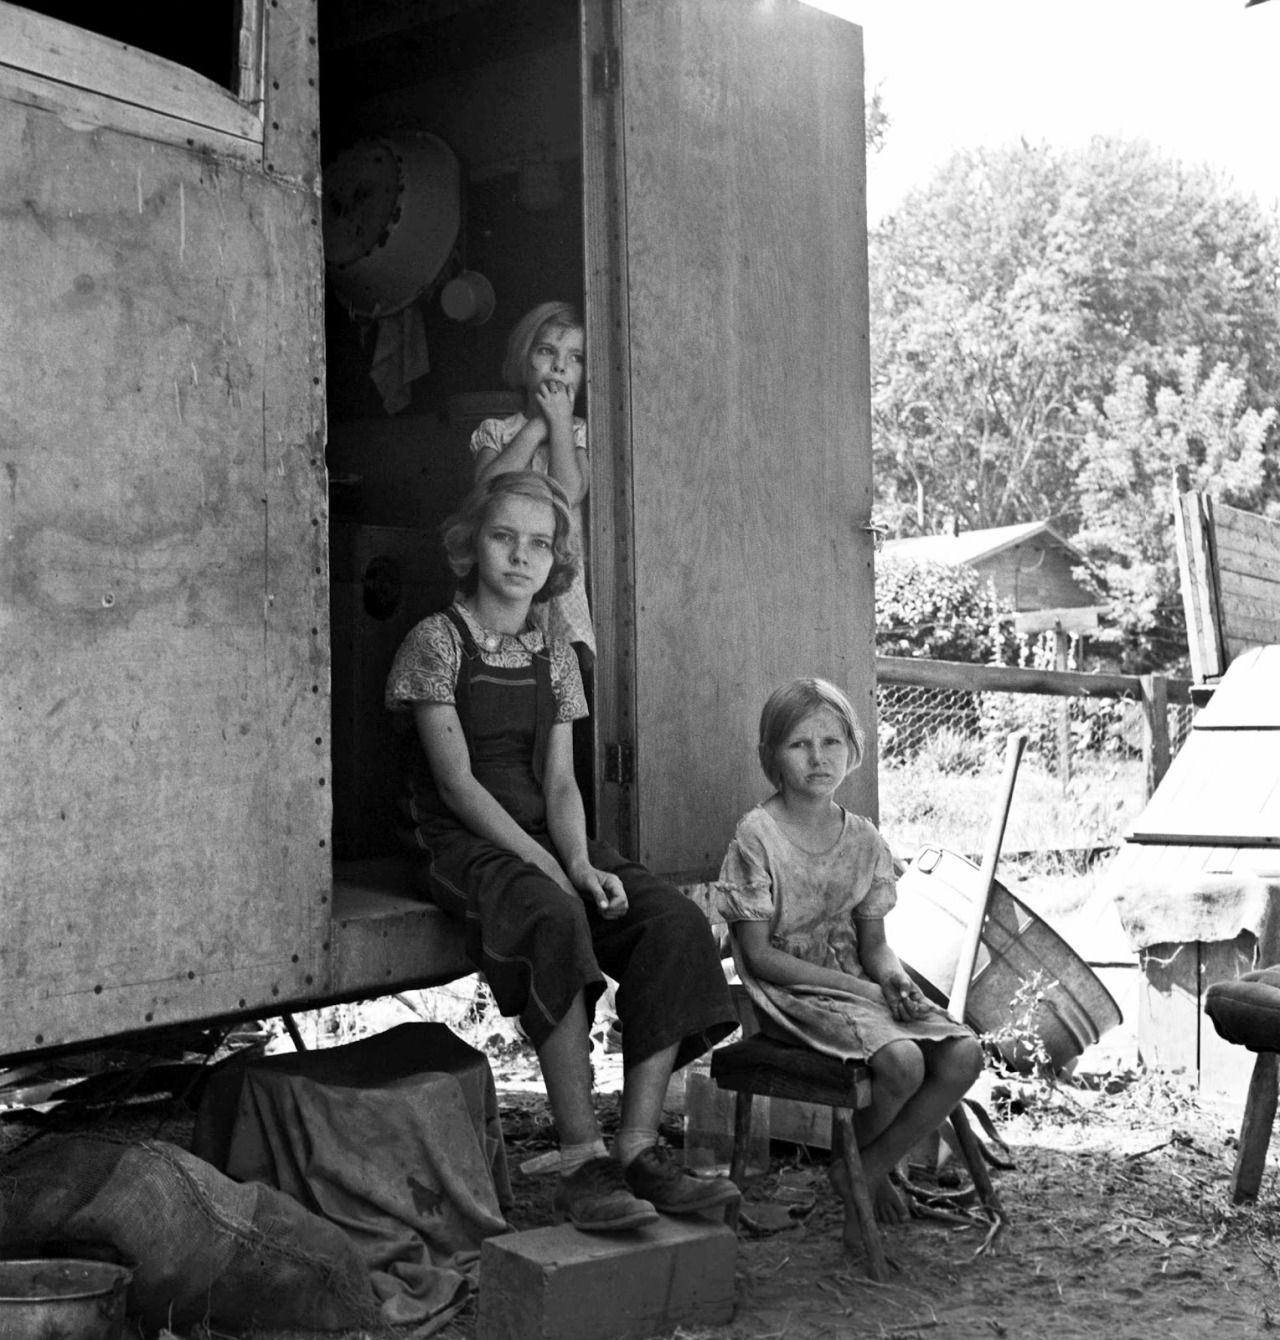 The oldest girl seated in the doorway of the house trailer cares for the family, Yakima Valley, Washington, 1939 by Dorothea Lange.